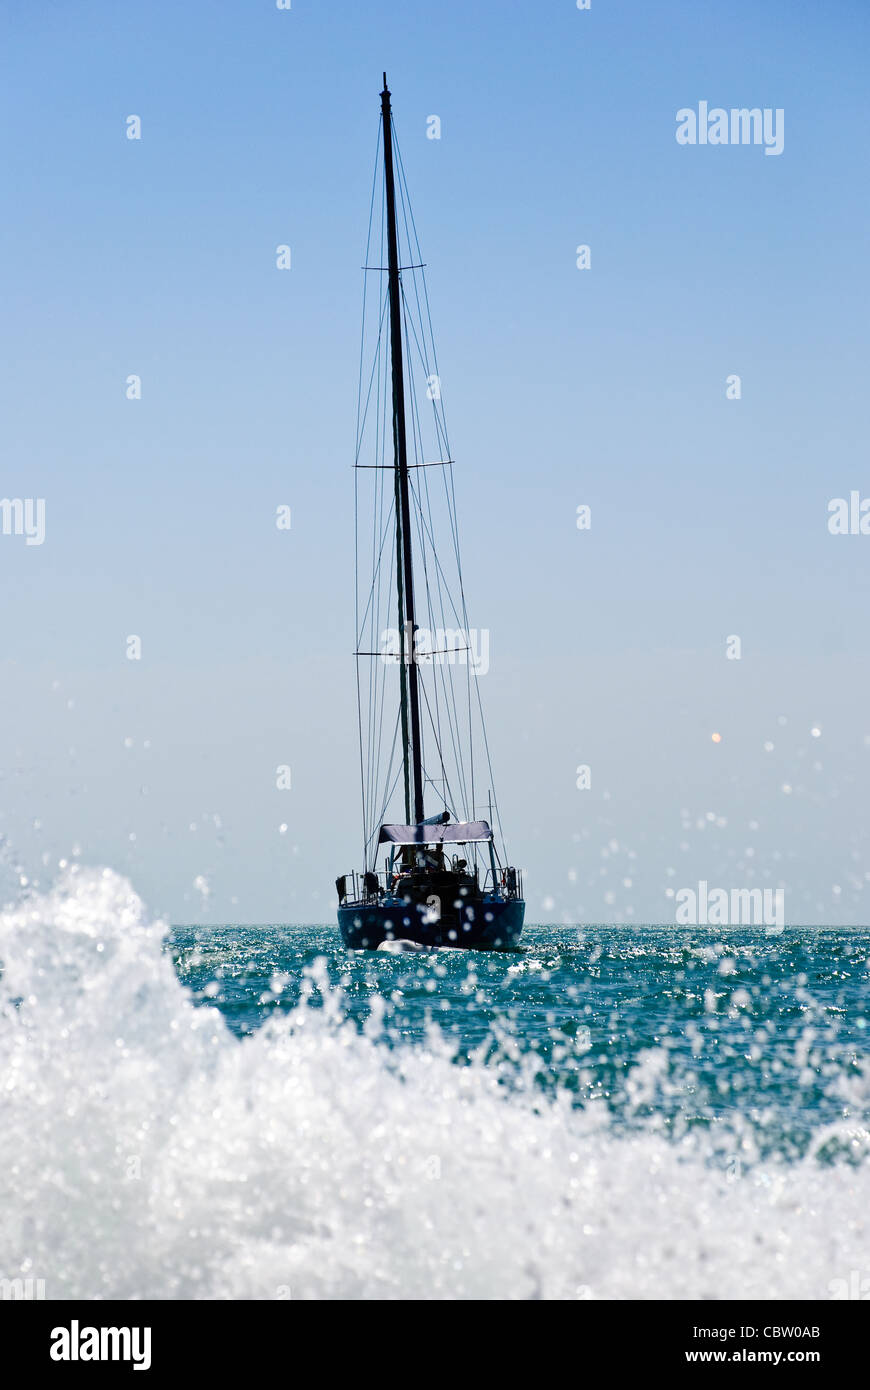 Ocean Victory Yacht Photos Ocean Victory Yacht Images Alamy